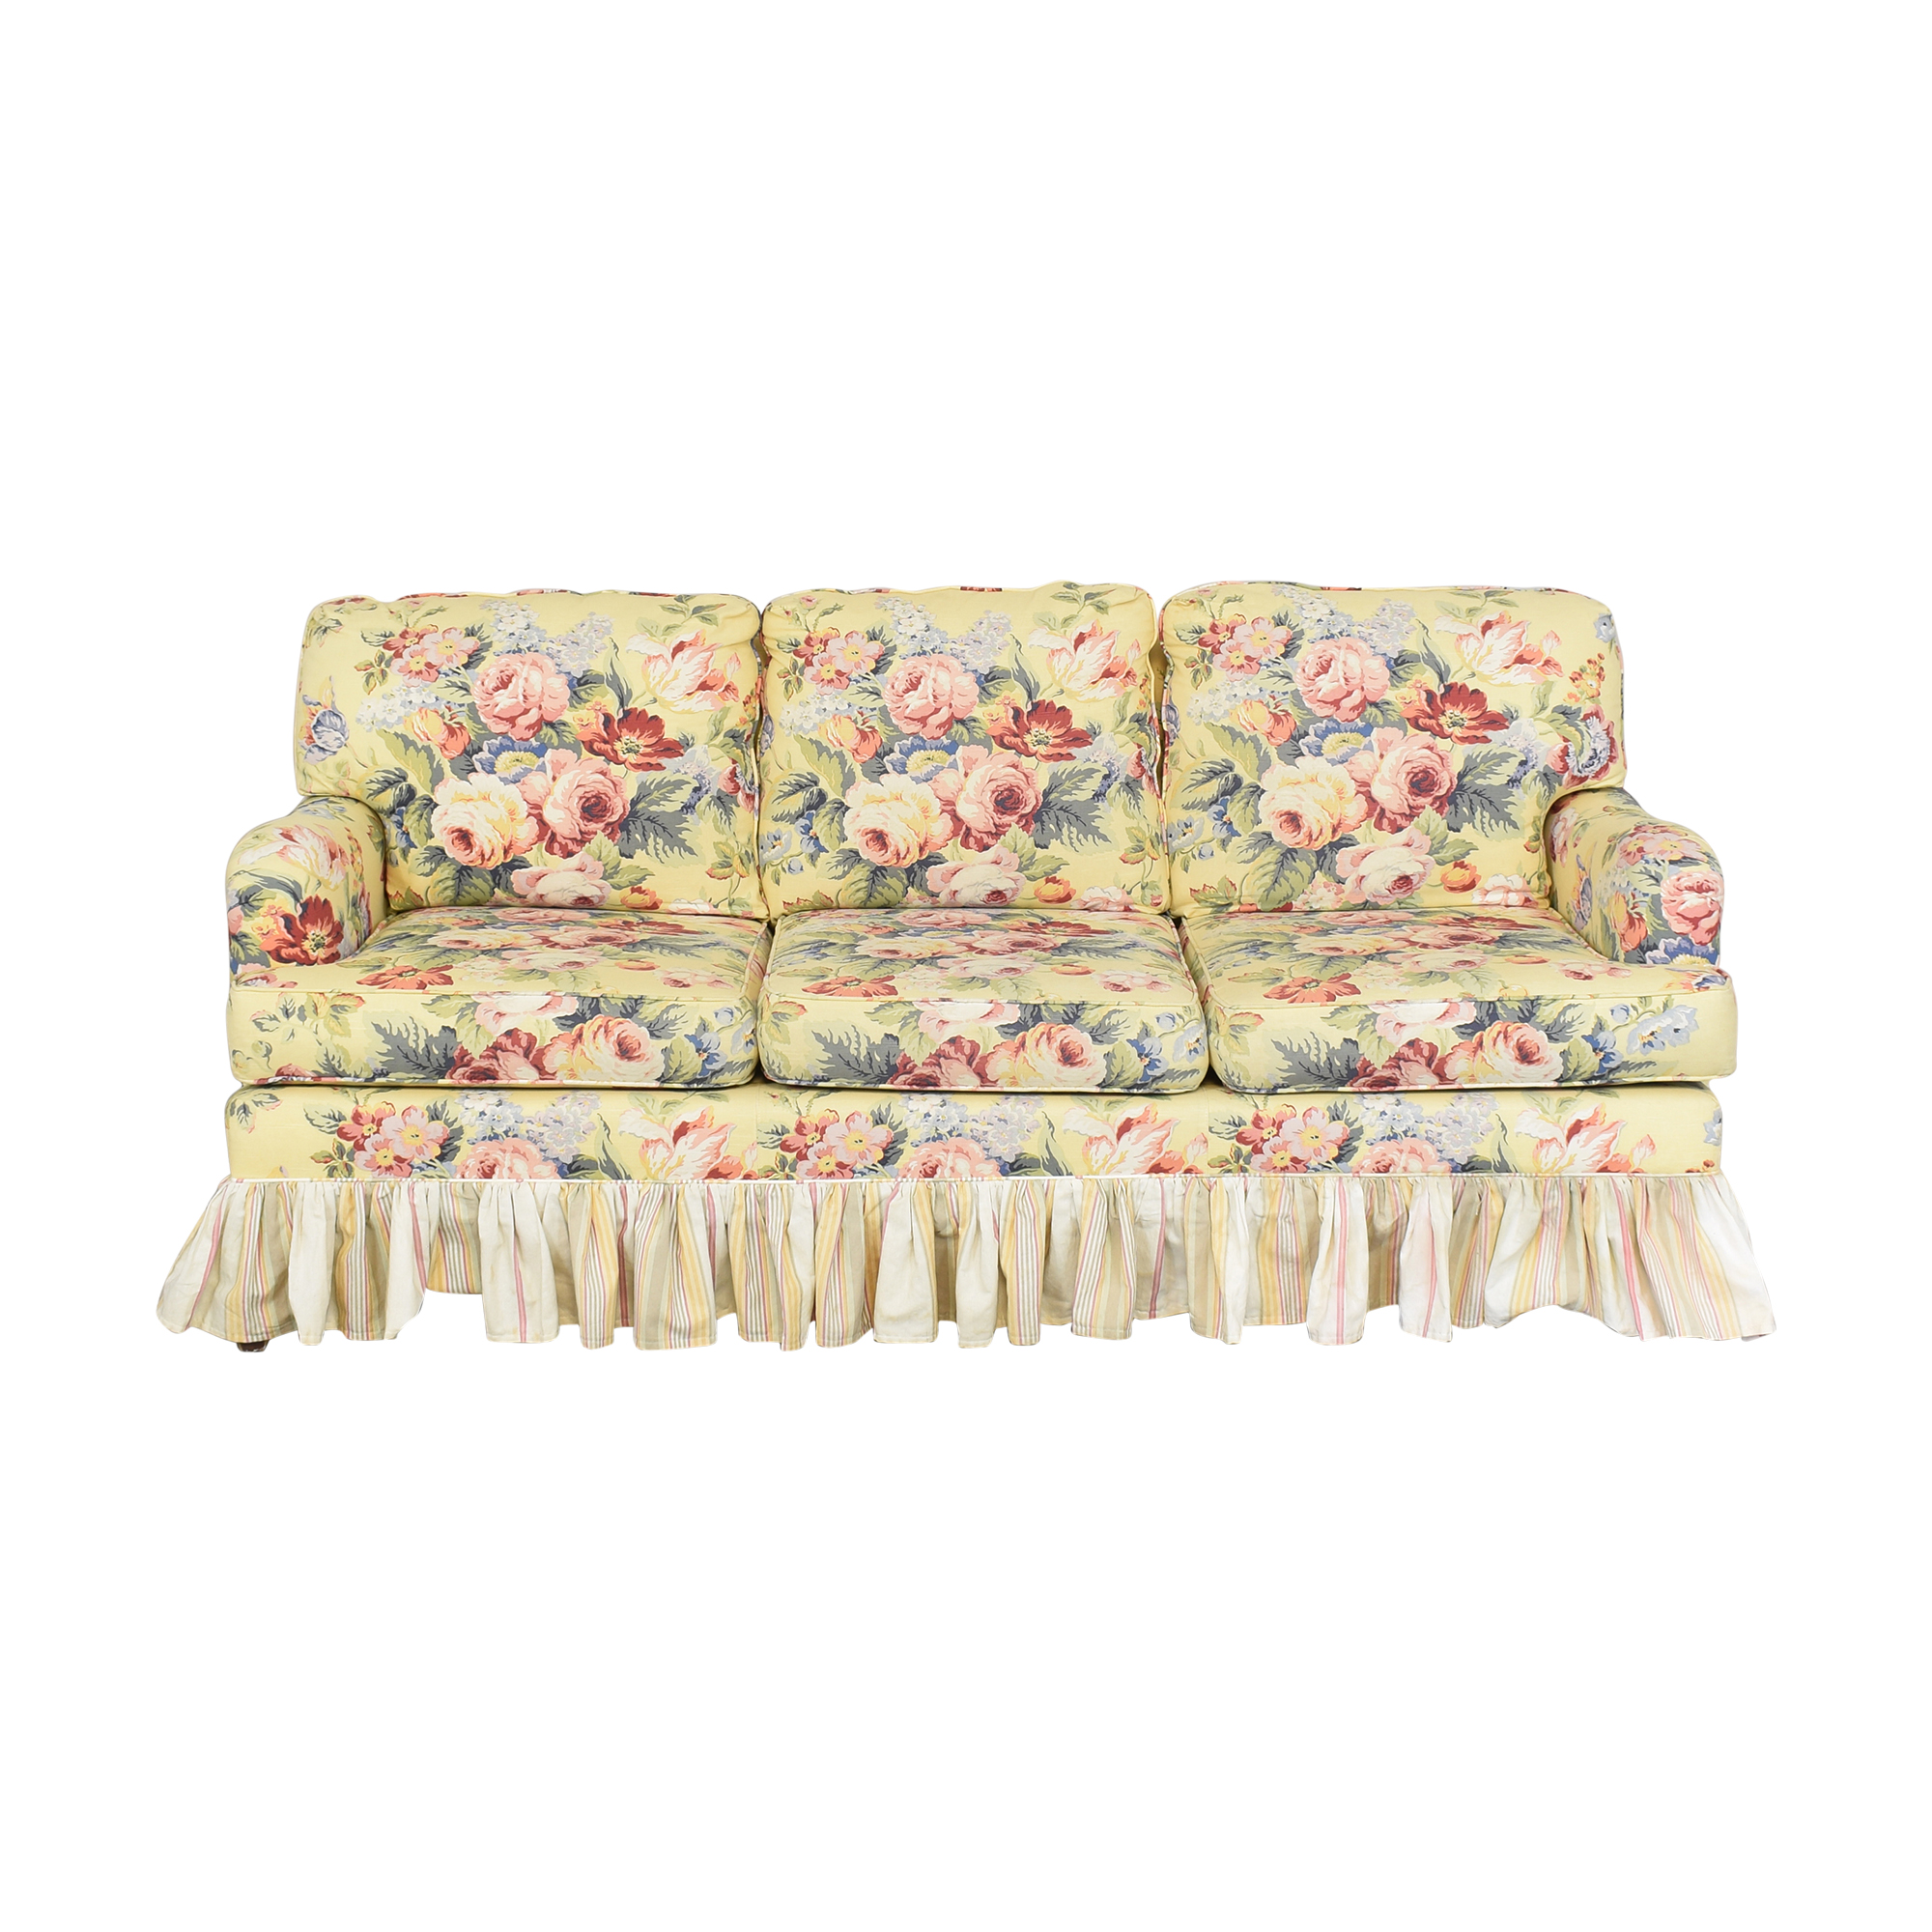 buy Sleepworks Custom Floral Sofa Sleepworks